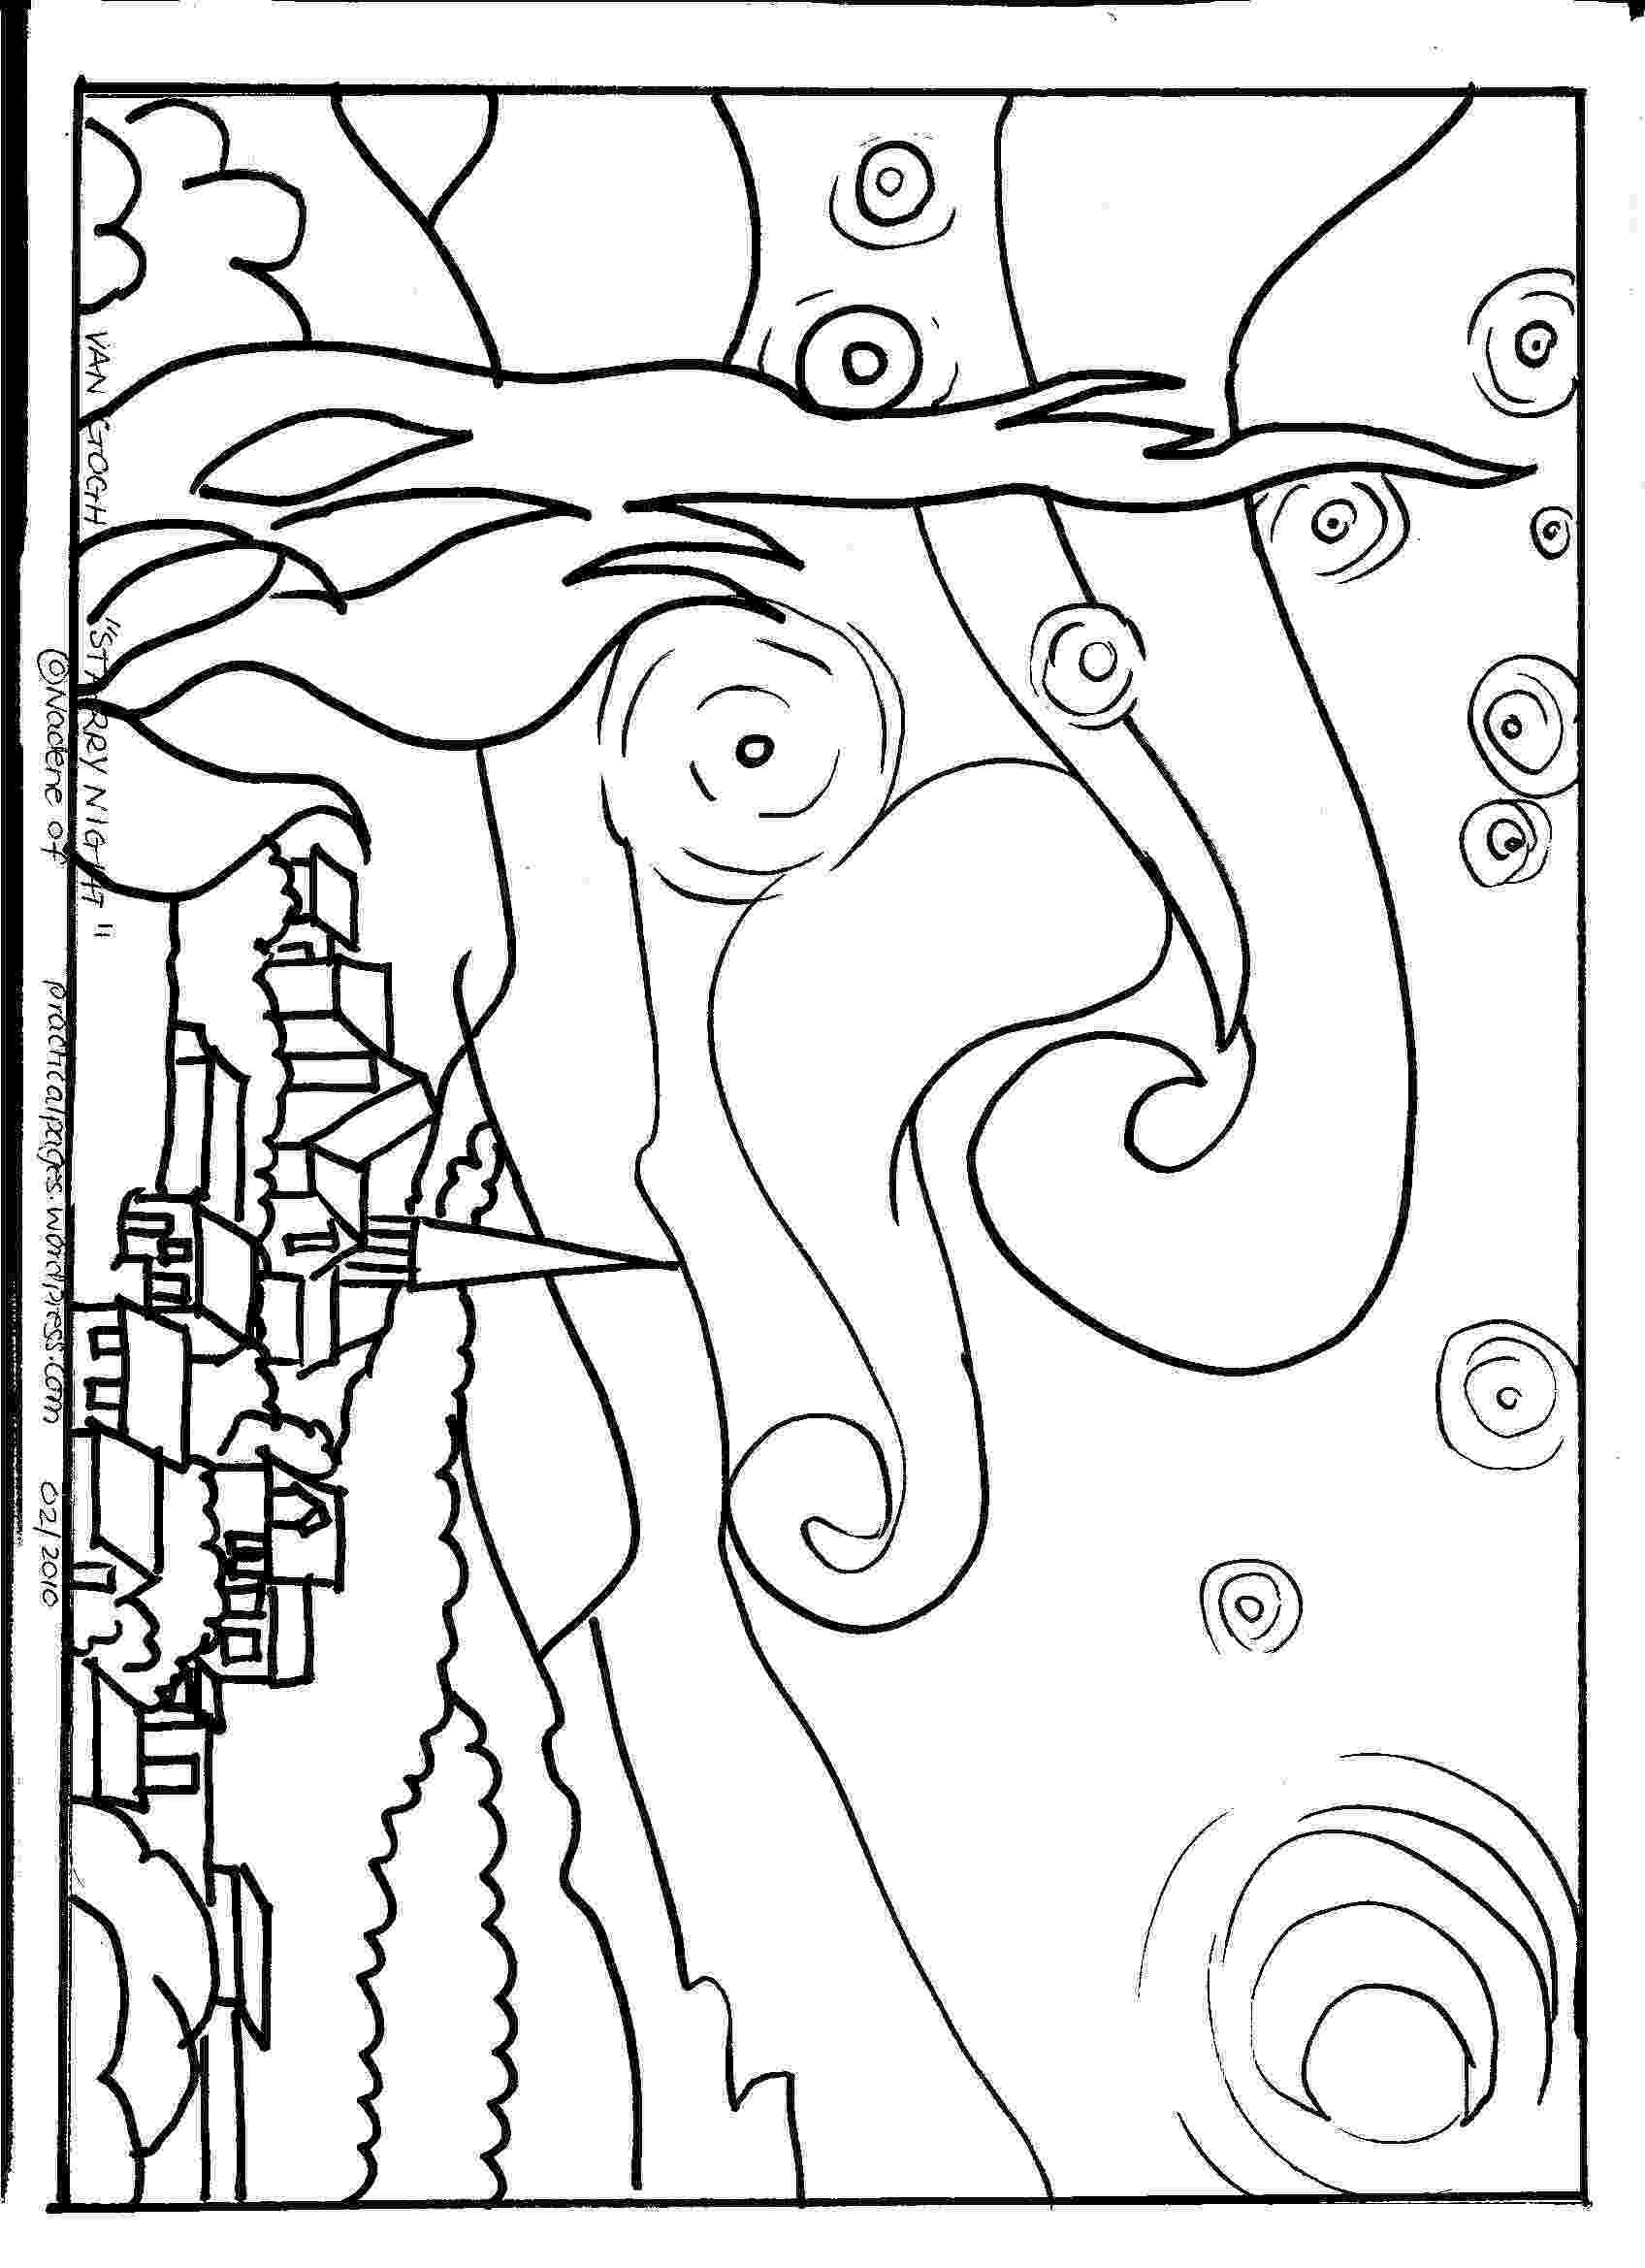 starry night coloring page kleurplaat starry night gratis kleurplaten om te printen night coloring starry page